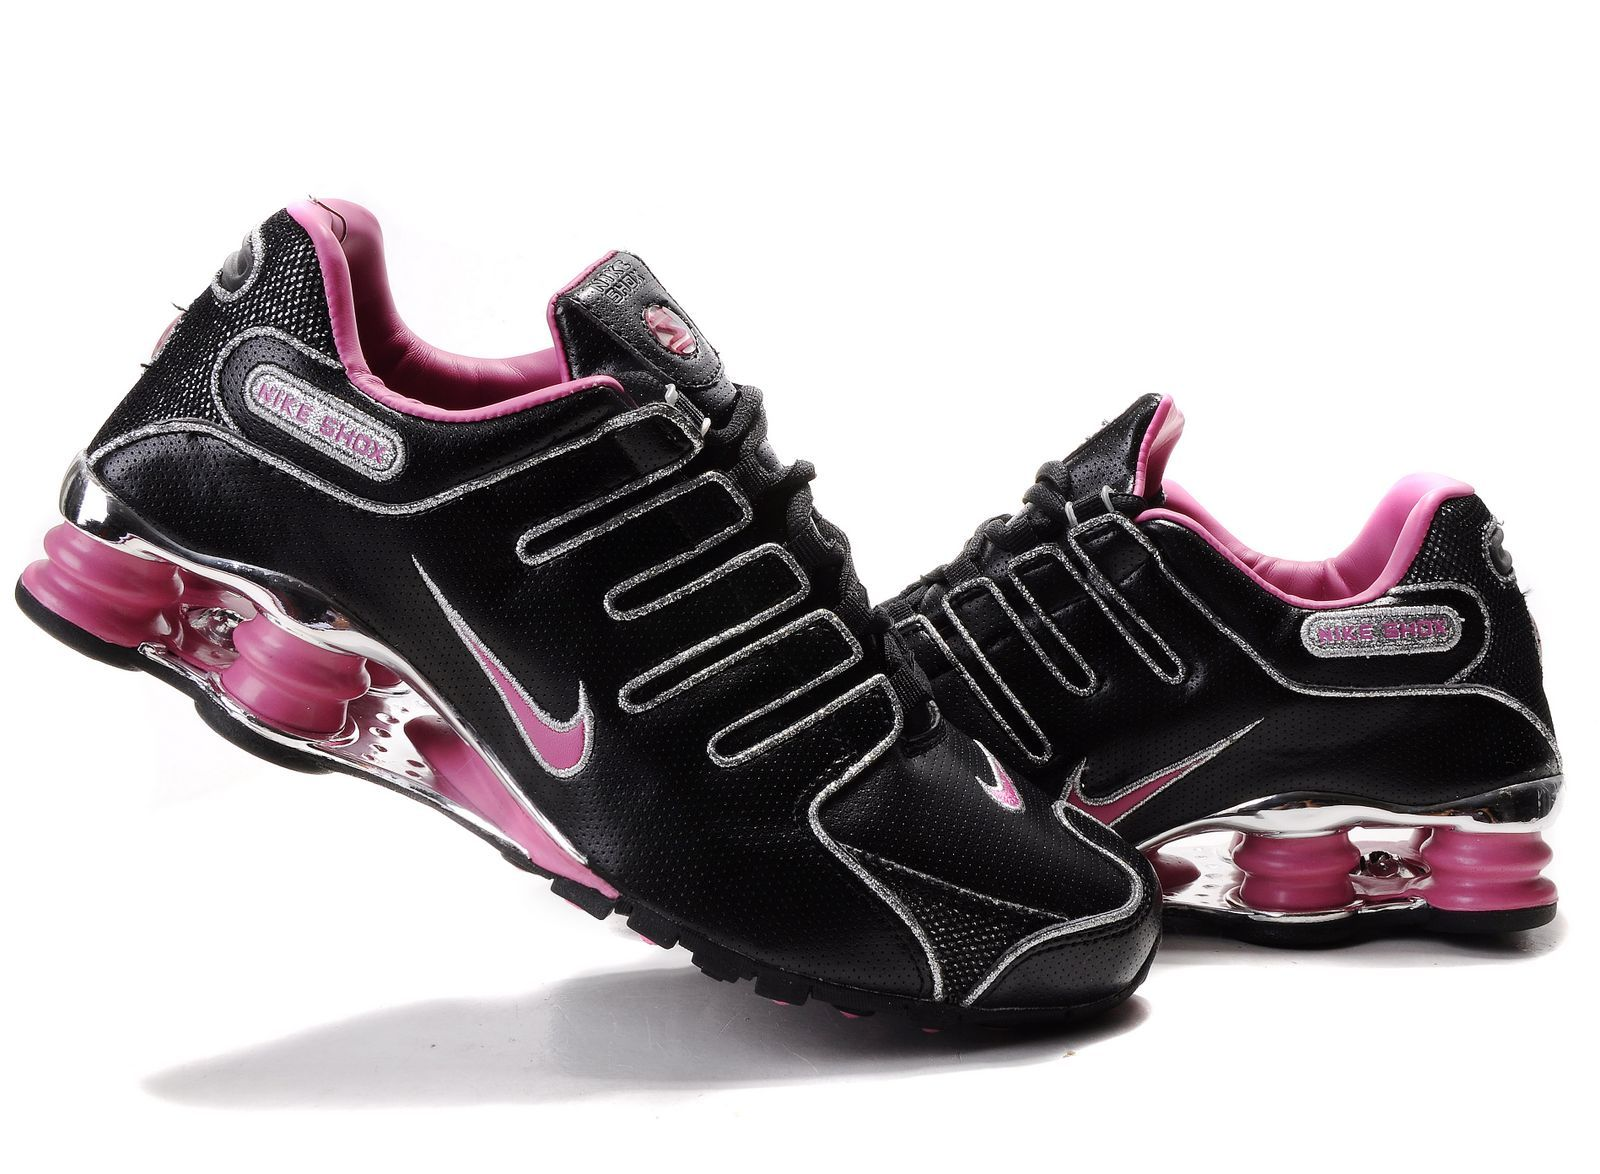 NIKE SHOX  Nike Shox NZ Plating Trainers Shoes Womens  Black Pink  Shoxforce1